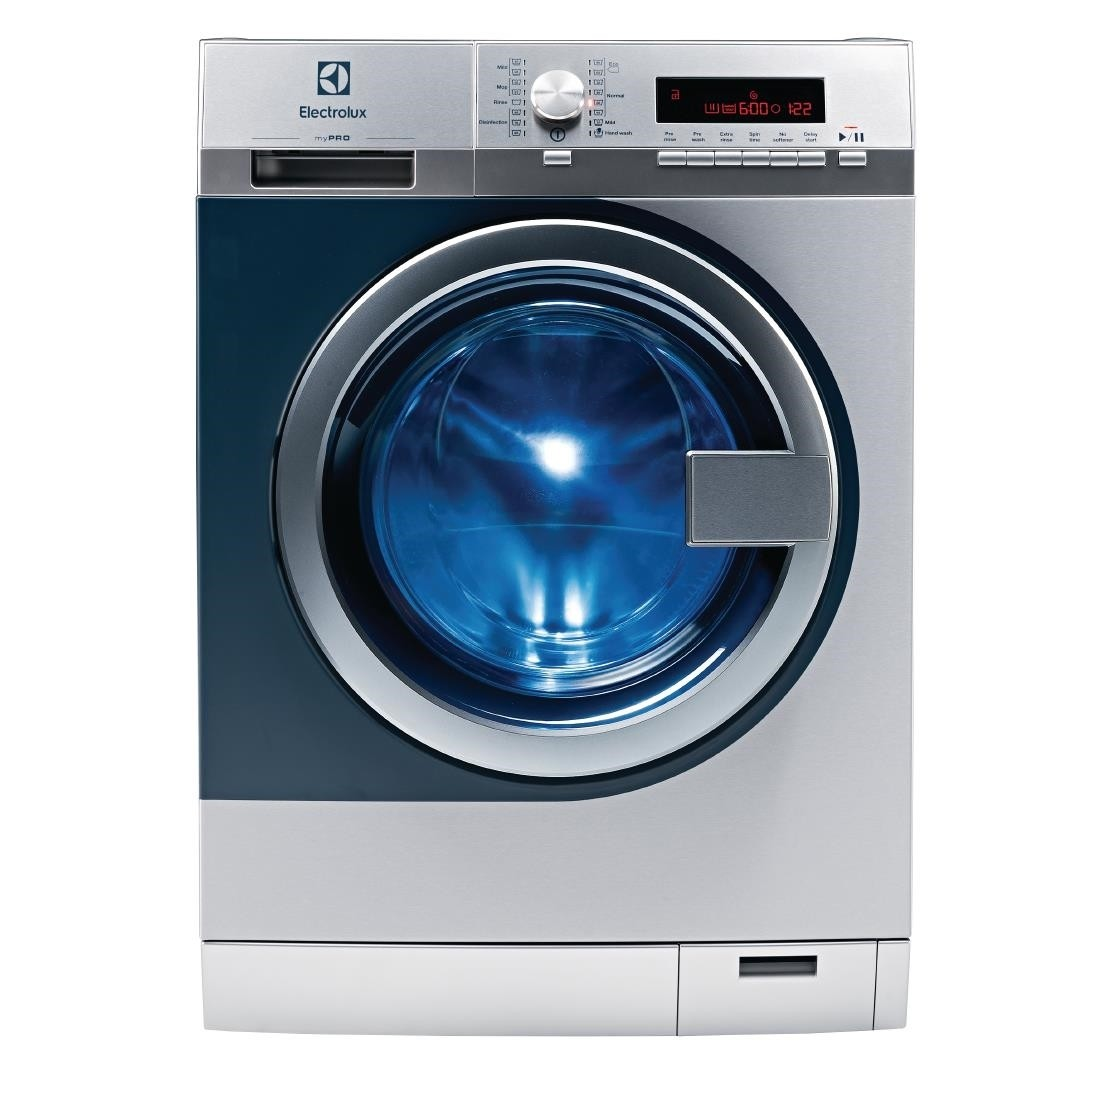 Electrolux WE170P 8kg 1400rpm myPRO Commercial Washing Machine